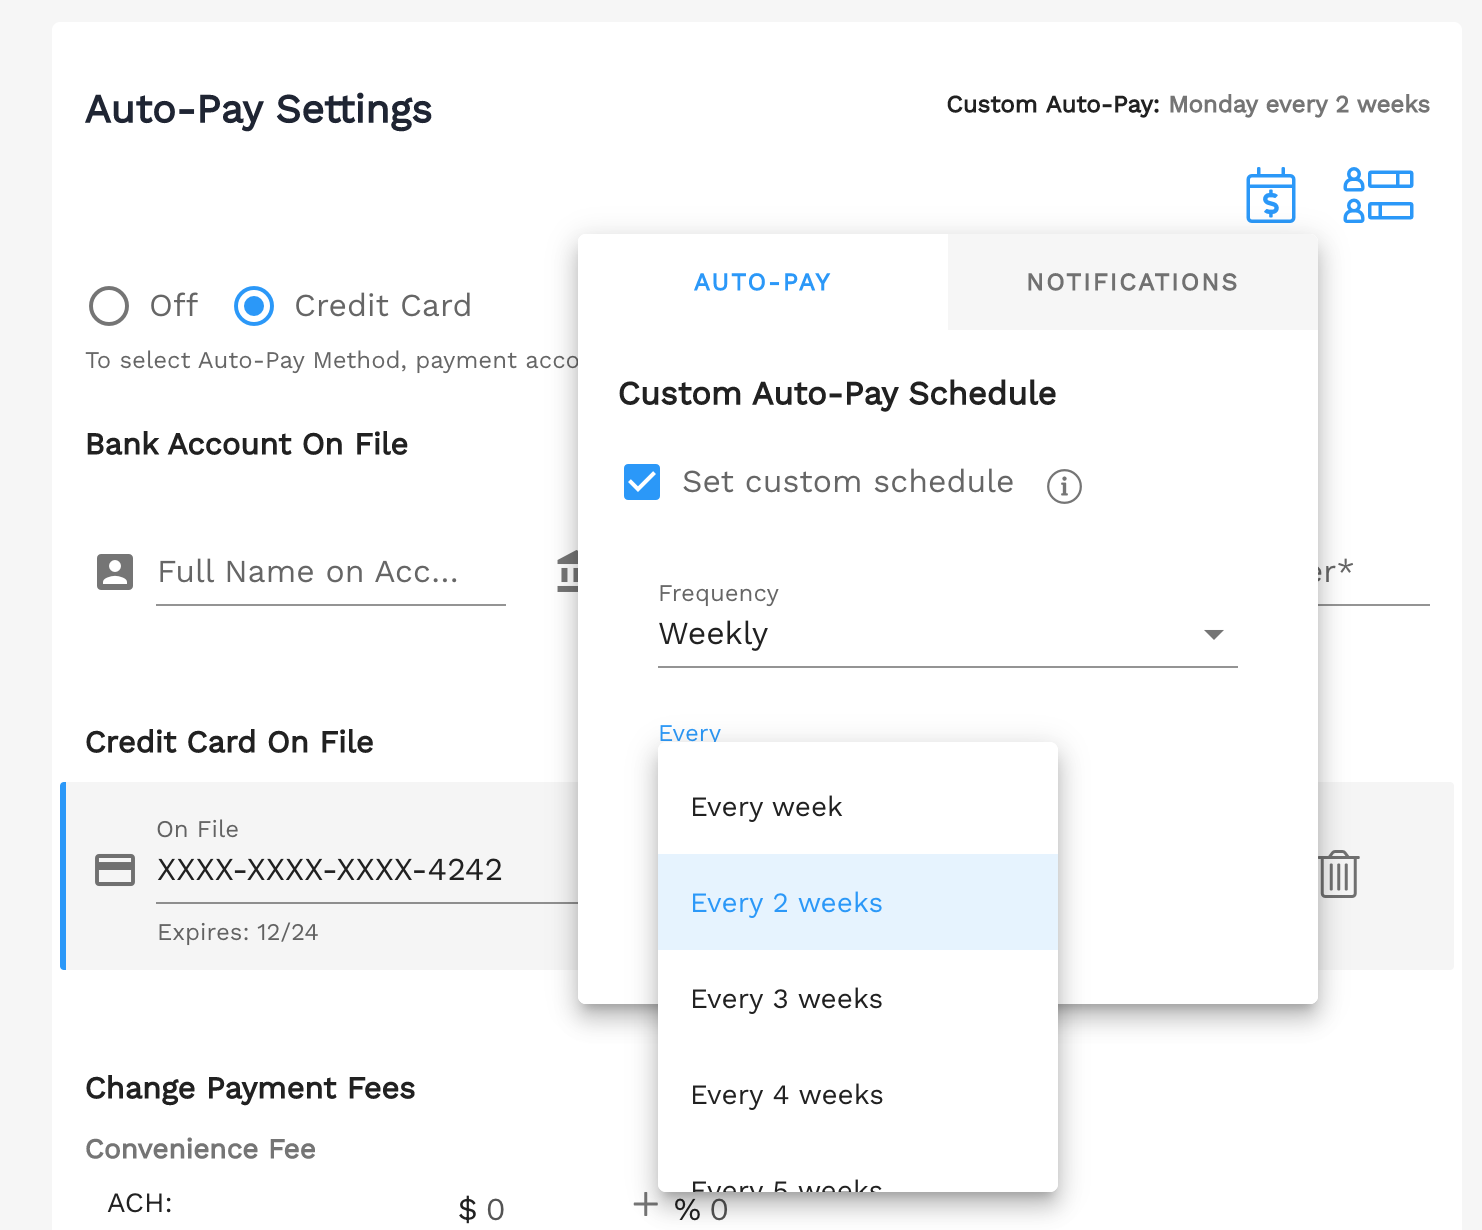 Set a custom auto-pay schedule in Enrollsy